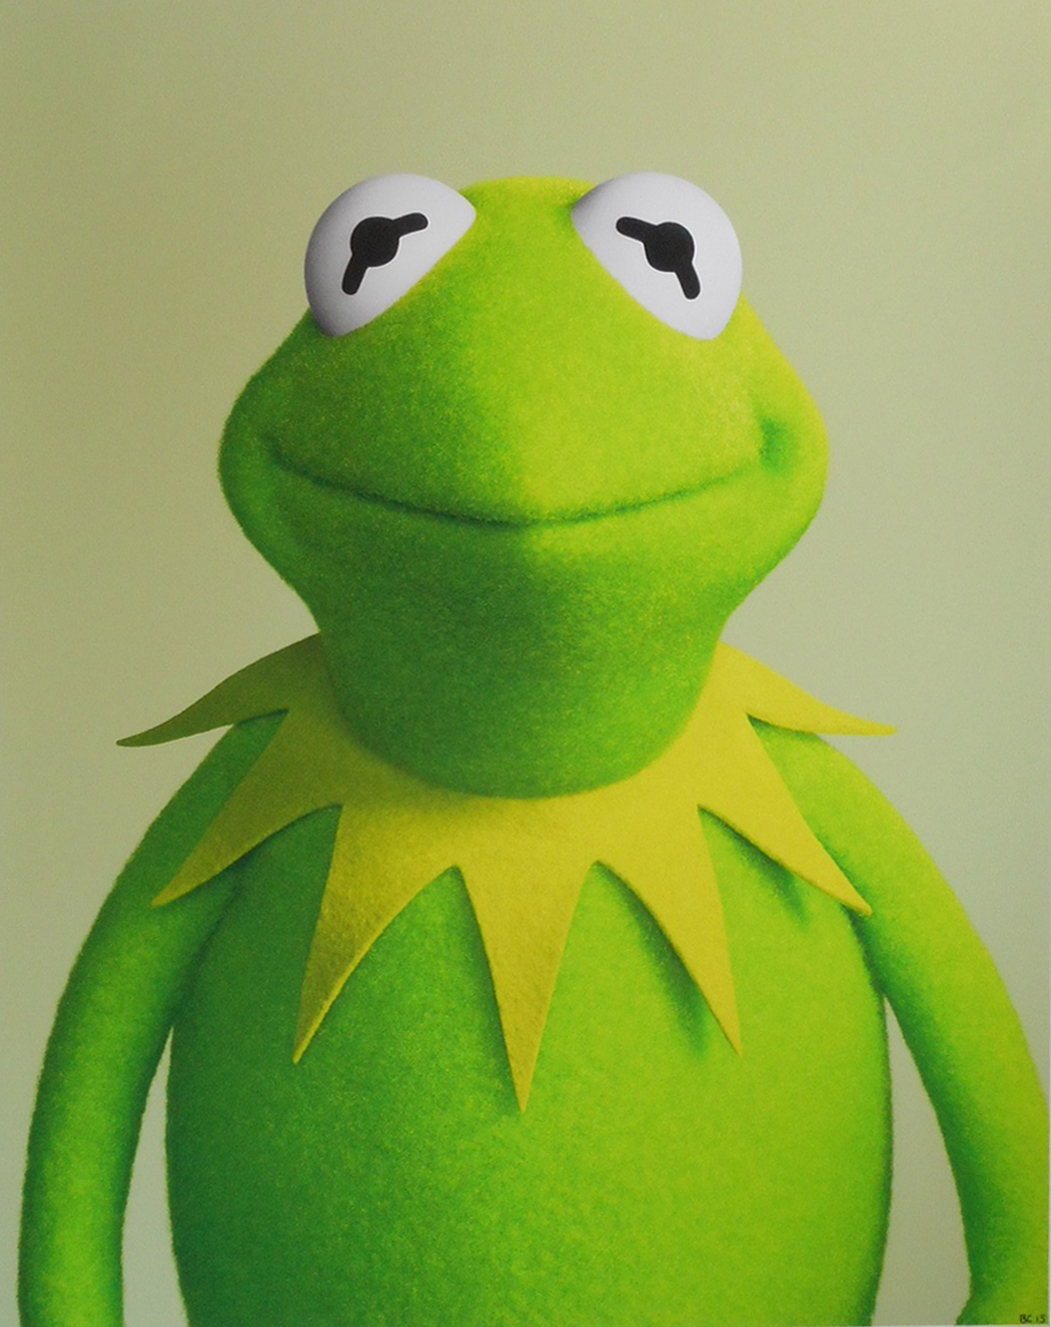 kermit the frag Kermit the frog takes the als ice bucket challenge | the muppets - duration: 1:31 the muppets 7,906,881 views.